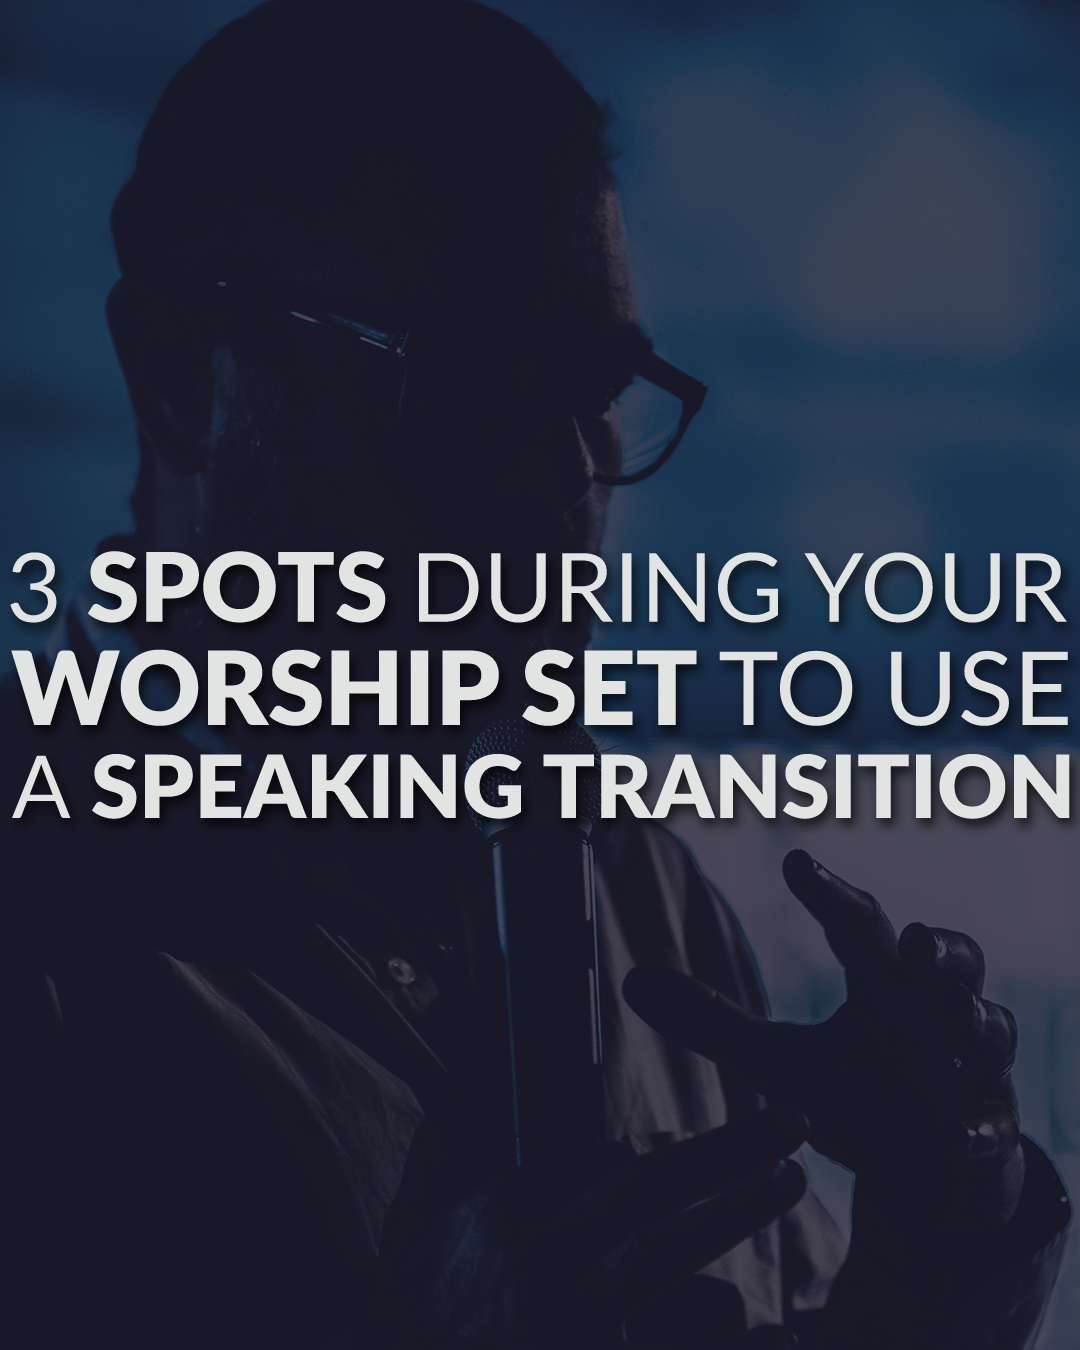 3 Spots During Your Worship Set To Use A Speaking Transition